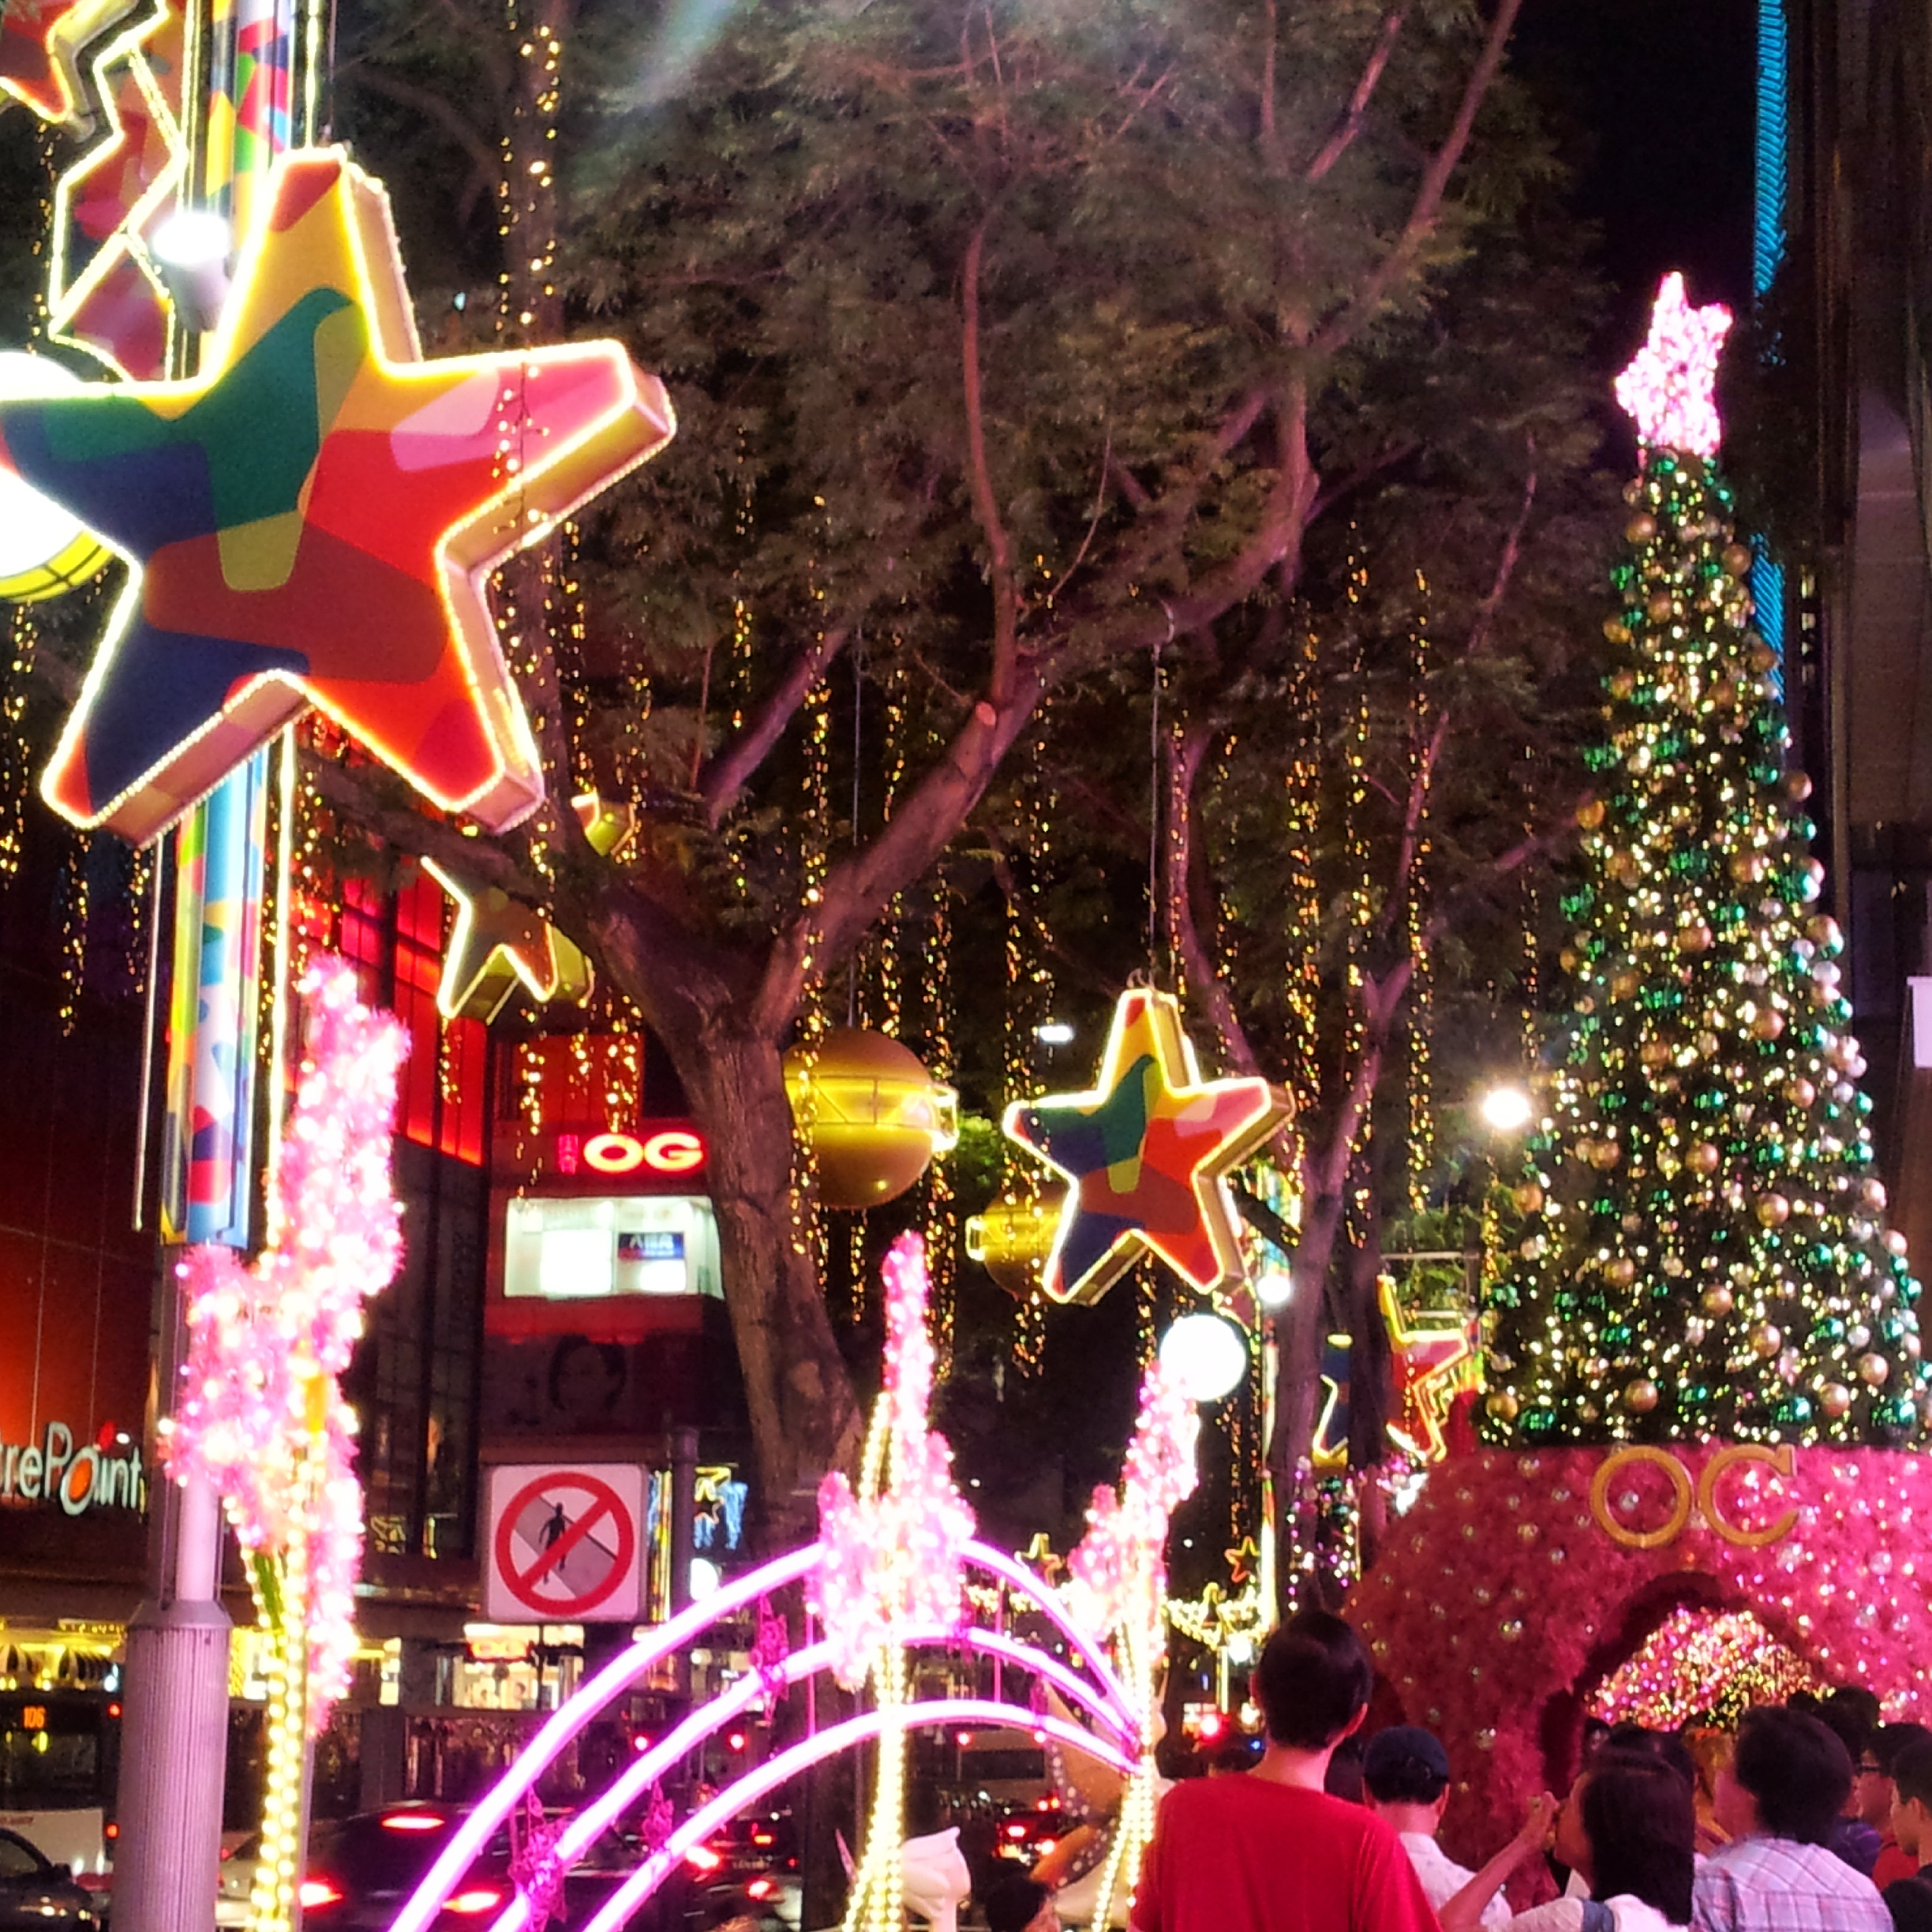 Singapore's Christmas Trees, Festive Lights And Dazzling